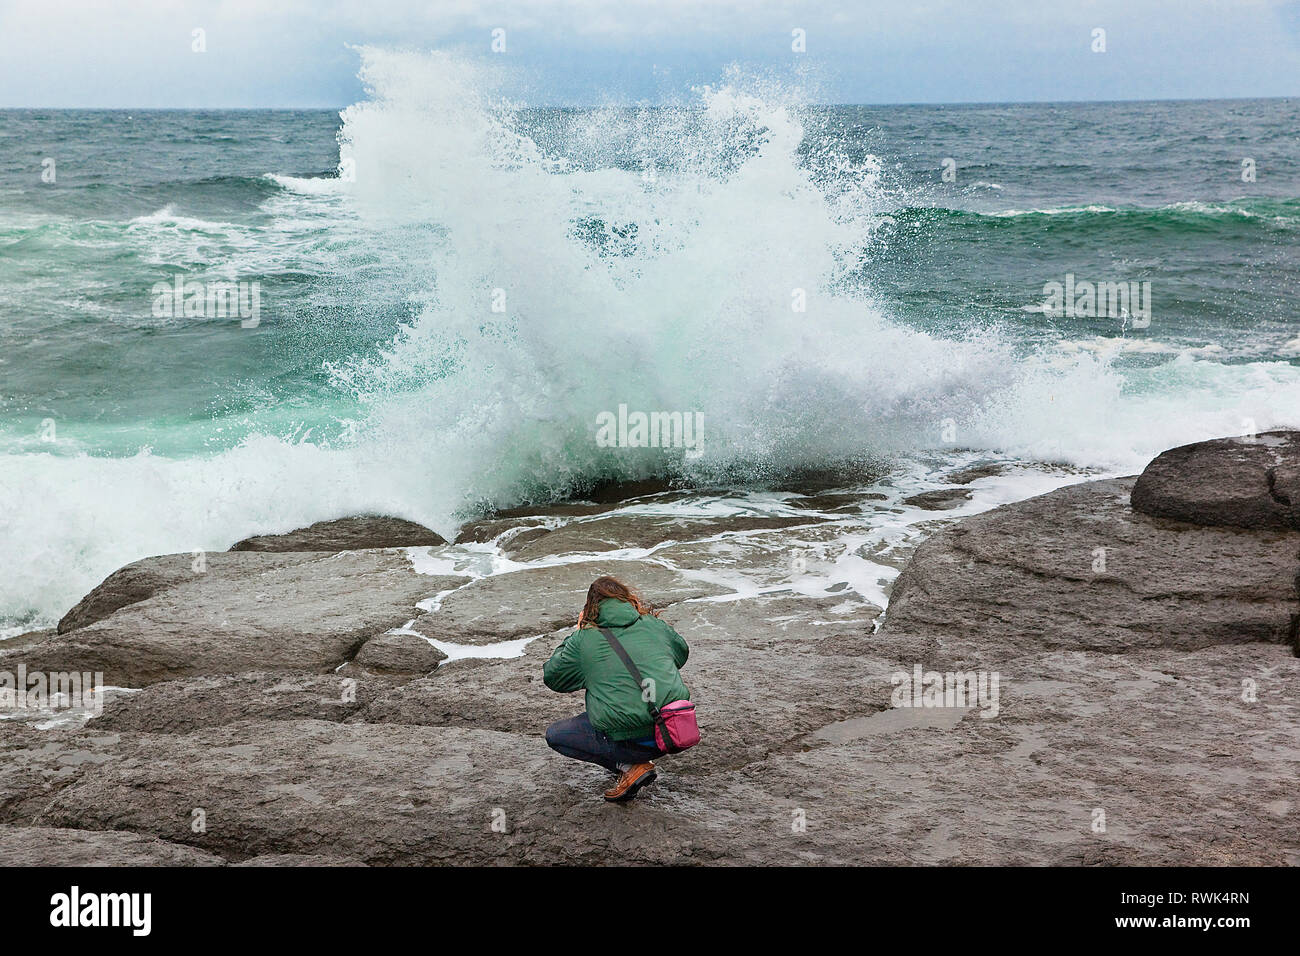 Young man crouched on a rock ledge in an attempt to photograph crashing waves up close. Port au Choix National Historic Site, Port au Choix, Newfoundland, Canada - Stock Image